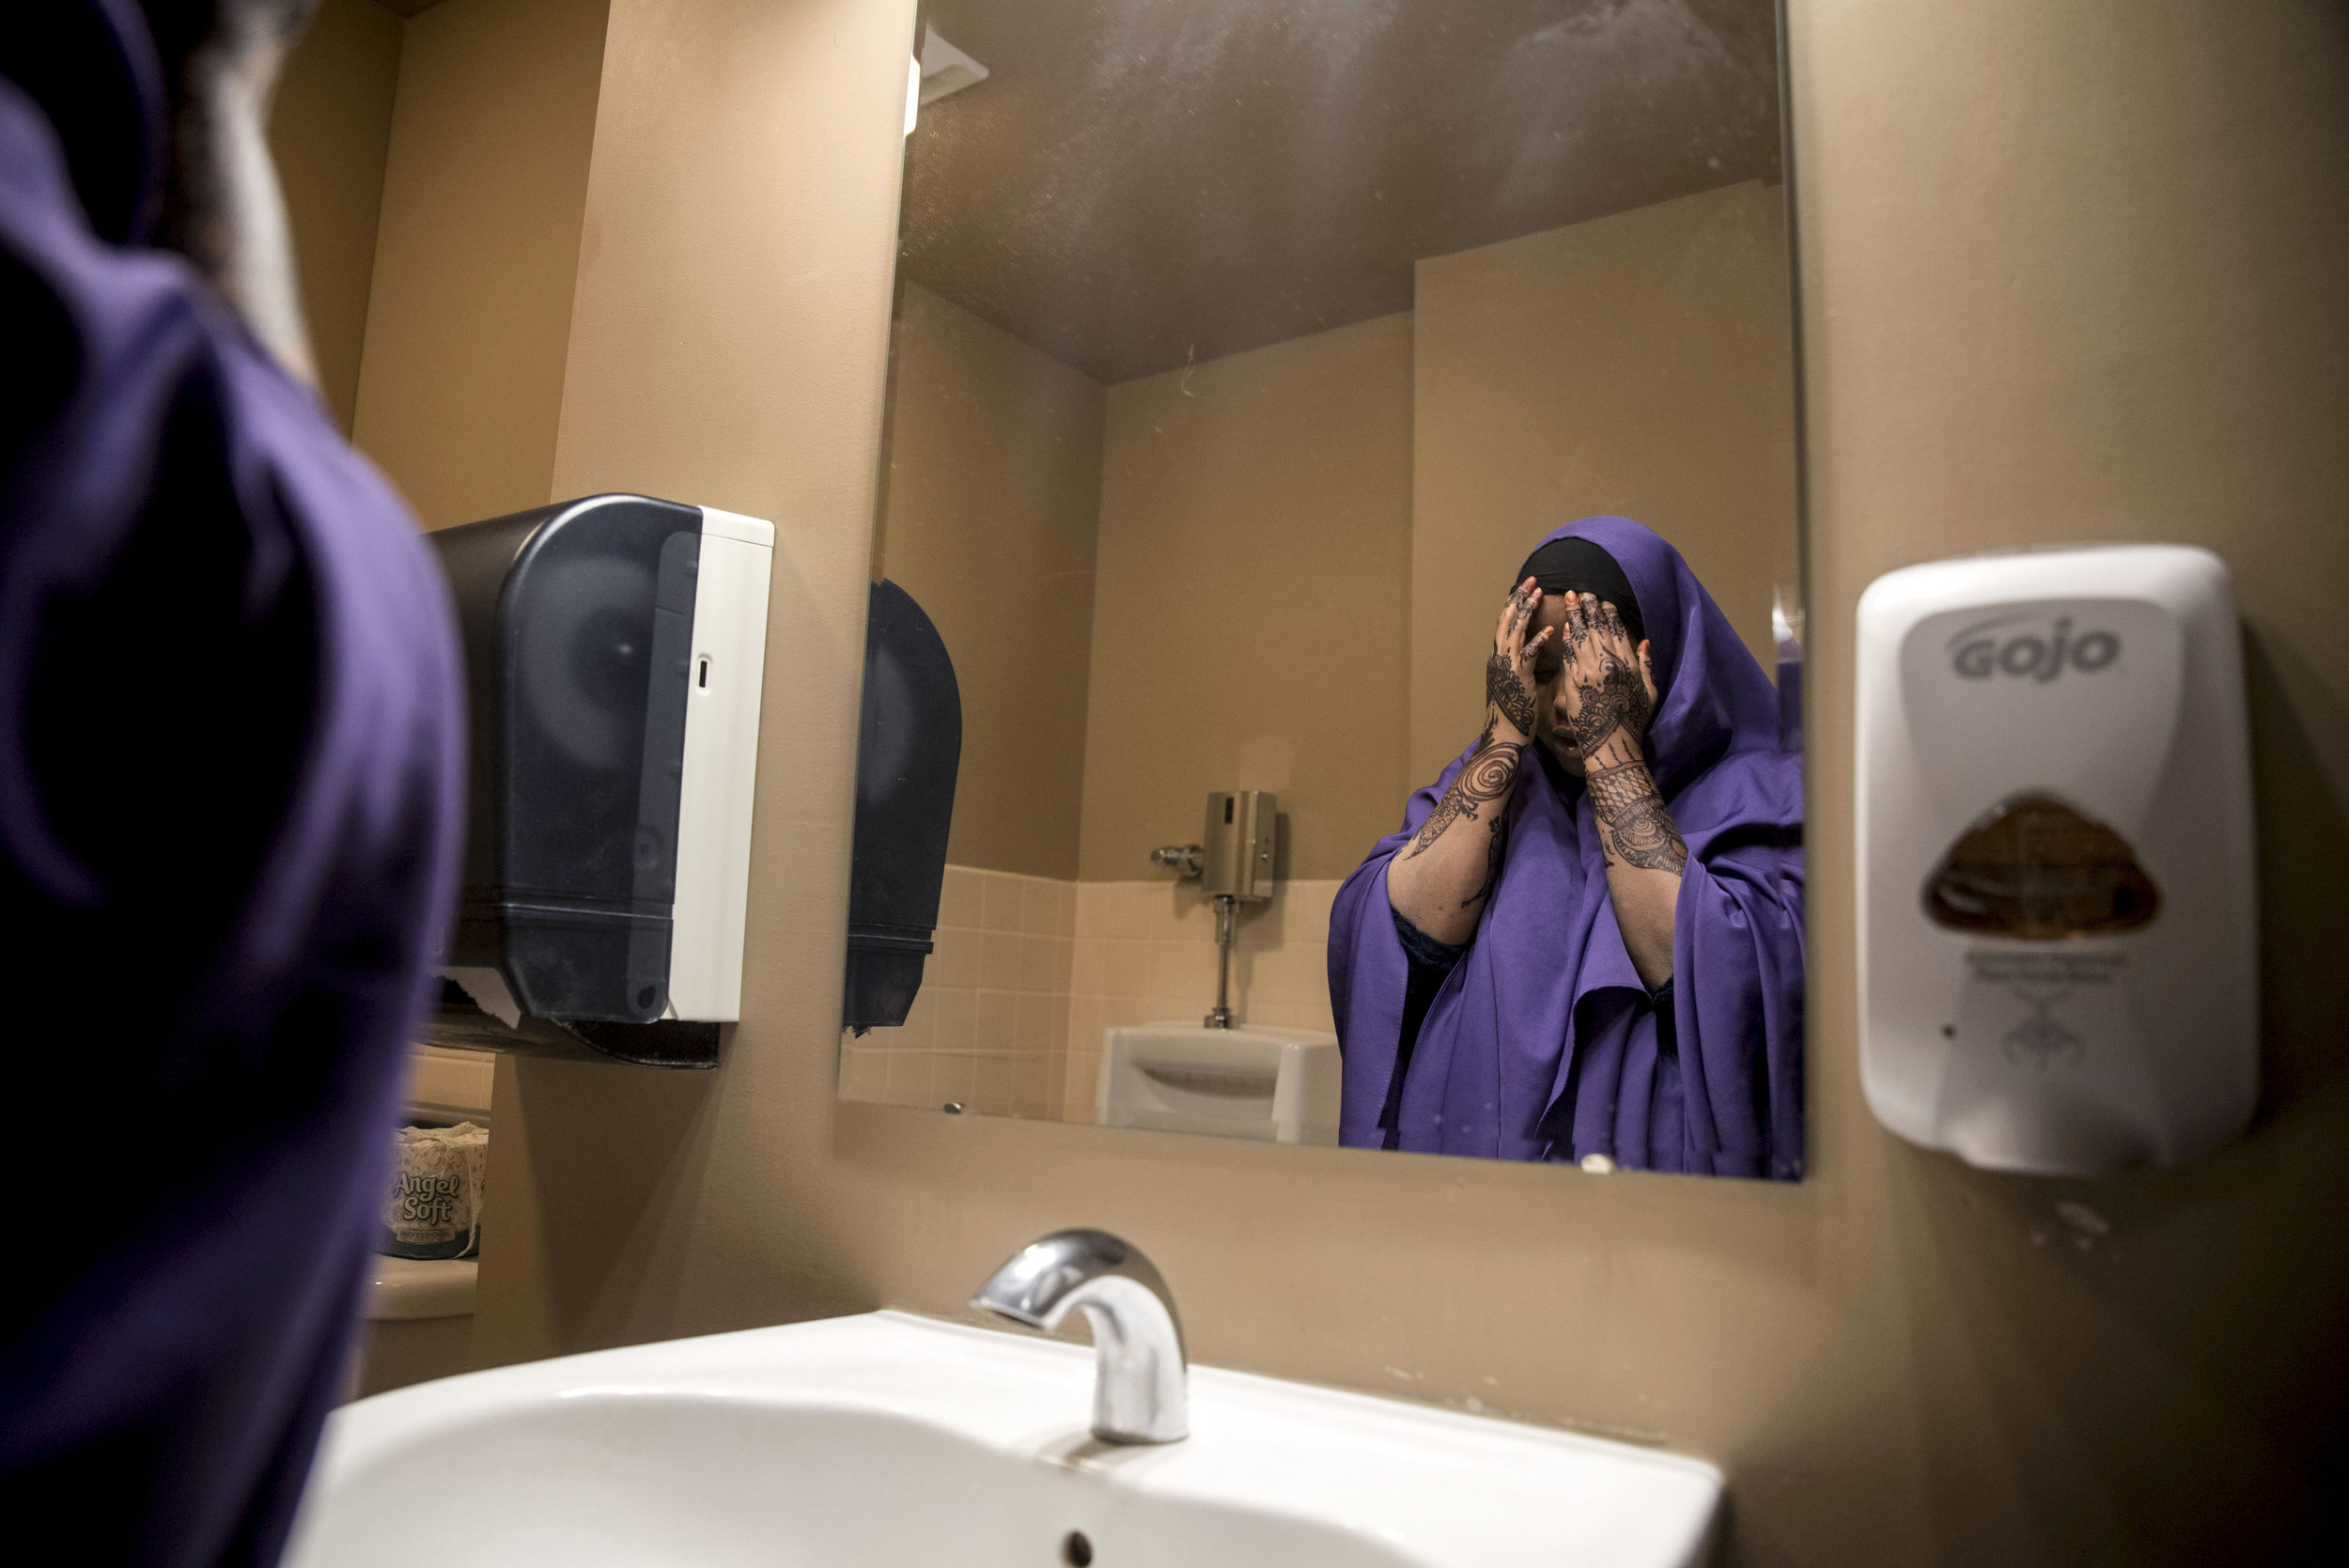 """Kosar washes her face in the bathroom before praying during her lunch break at United Community Action Partnership Feb. 13 in Willmar. After graduating high school, she worked several jobs and now works as a Somali Bilingual Outreach Worker at UCAP. As a Muslim, Kosar prays five times a day. """"Being able to pray at work makes my life so much easier,"""" Kosar said. """"I've had many jobs where I wasn't able to pray because of discrimination or because I wasn't able to take my break at a certain time."""""""